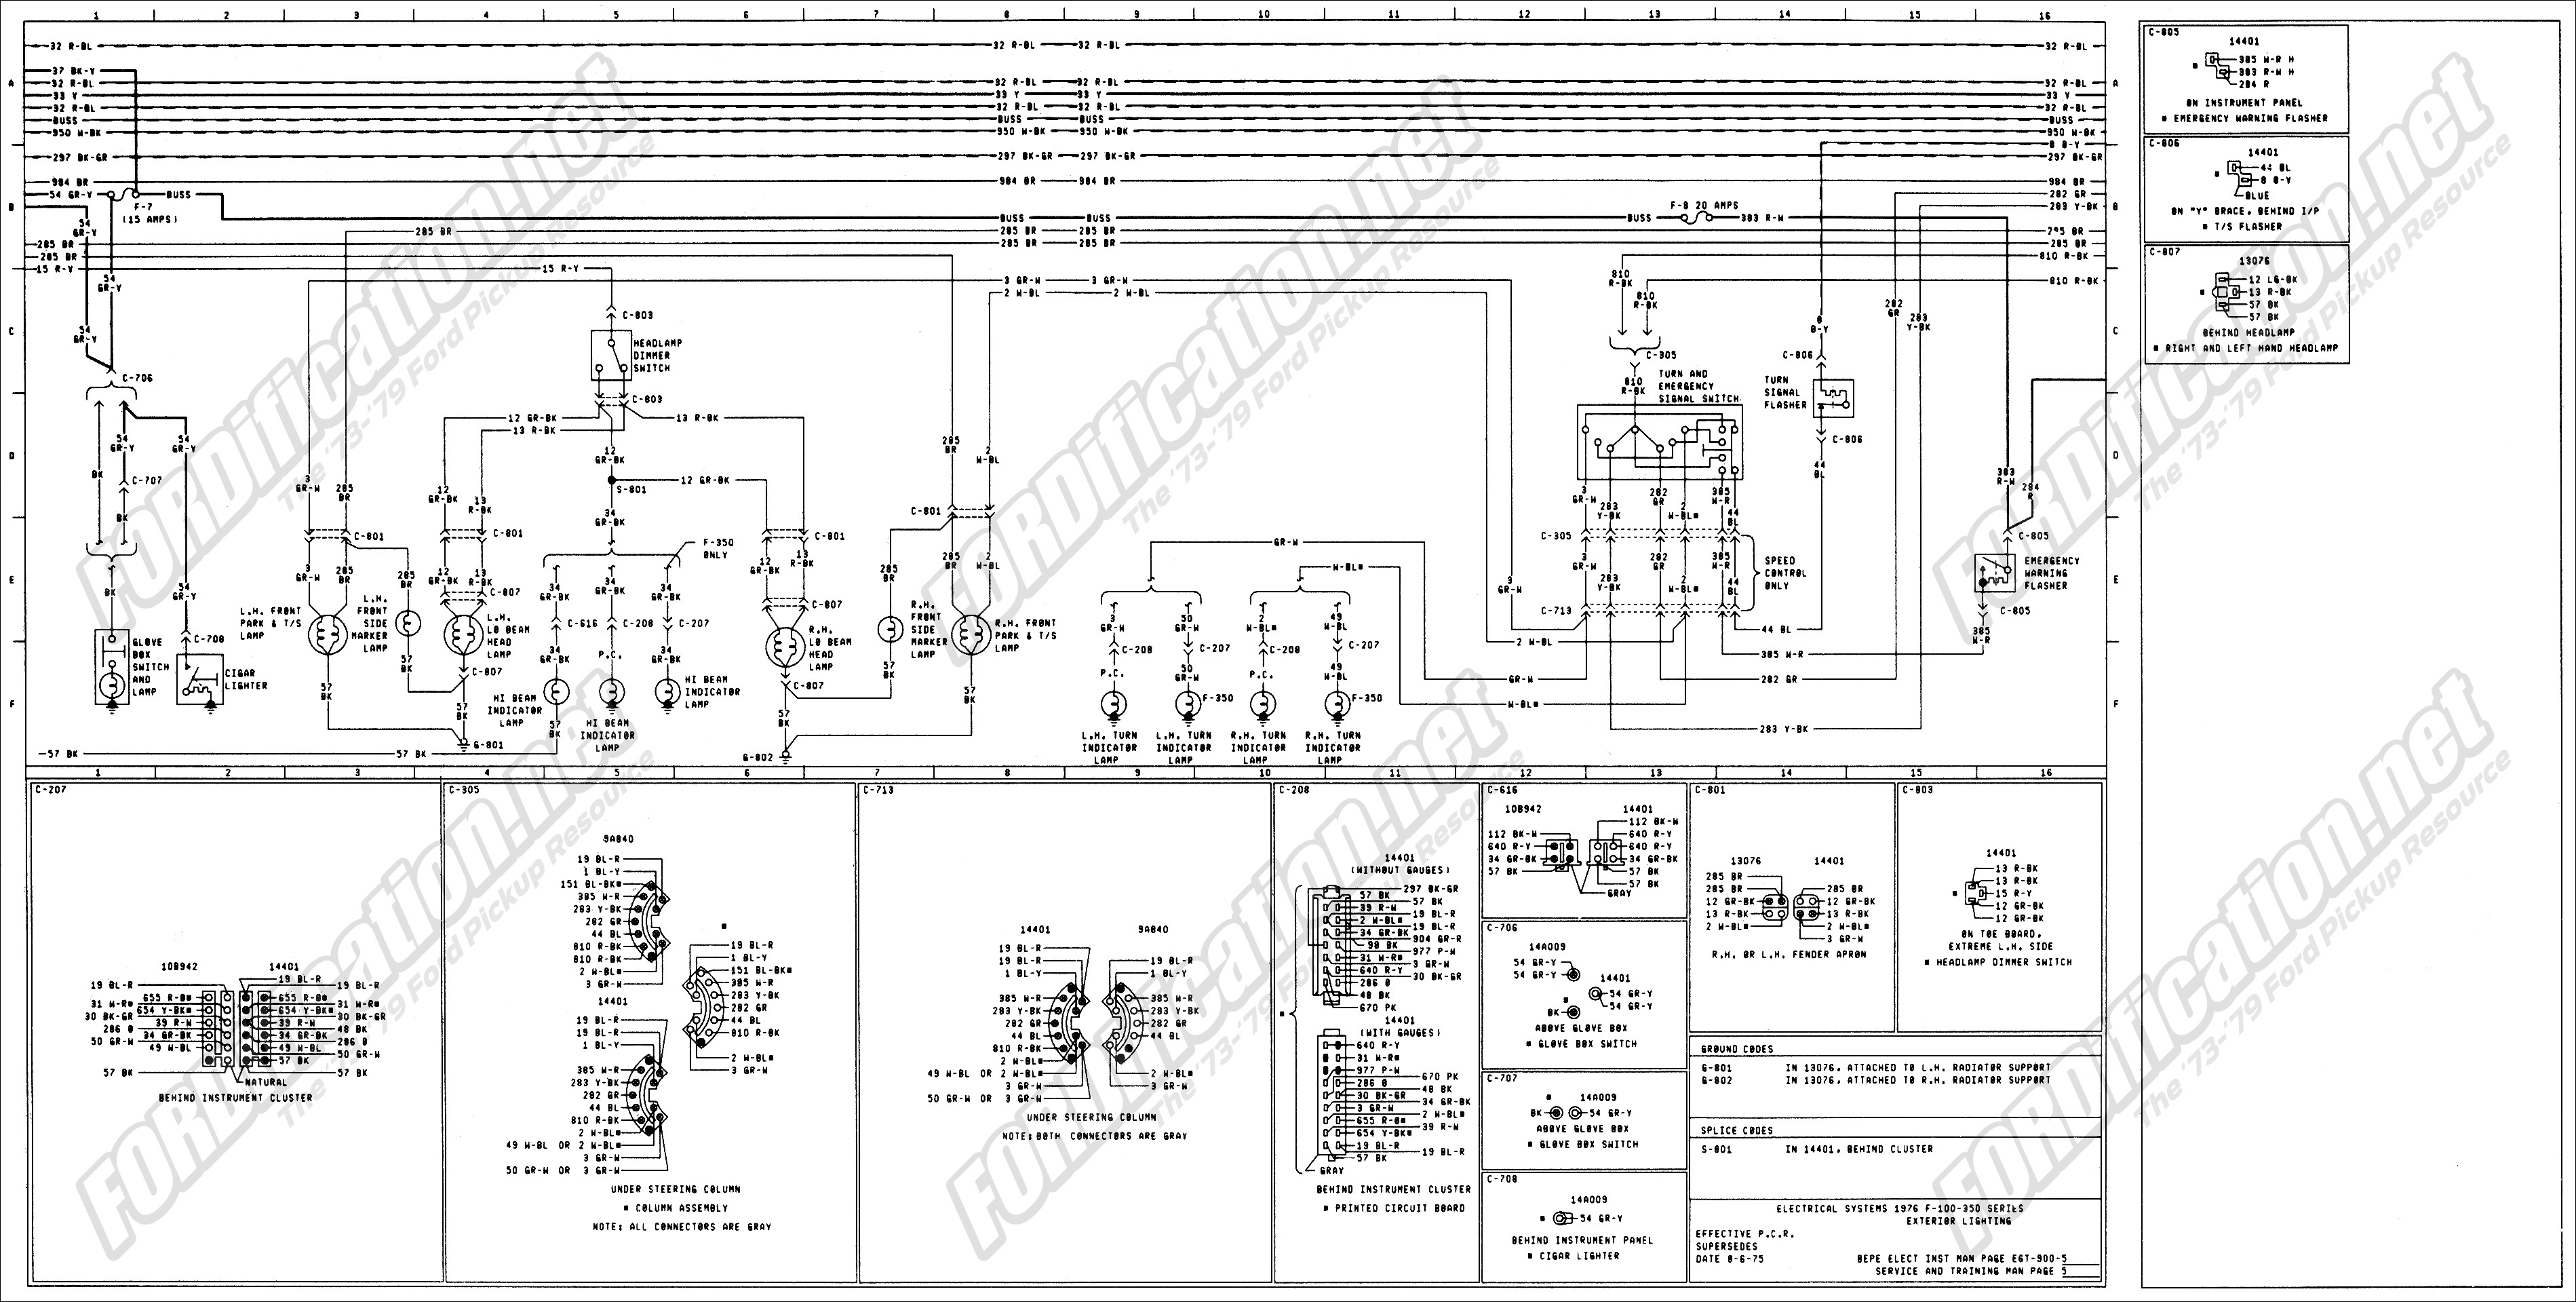 1979 f150 wiring diagram wiring diagram1979 f150 wiring diagram